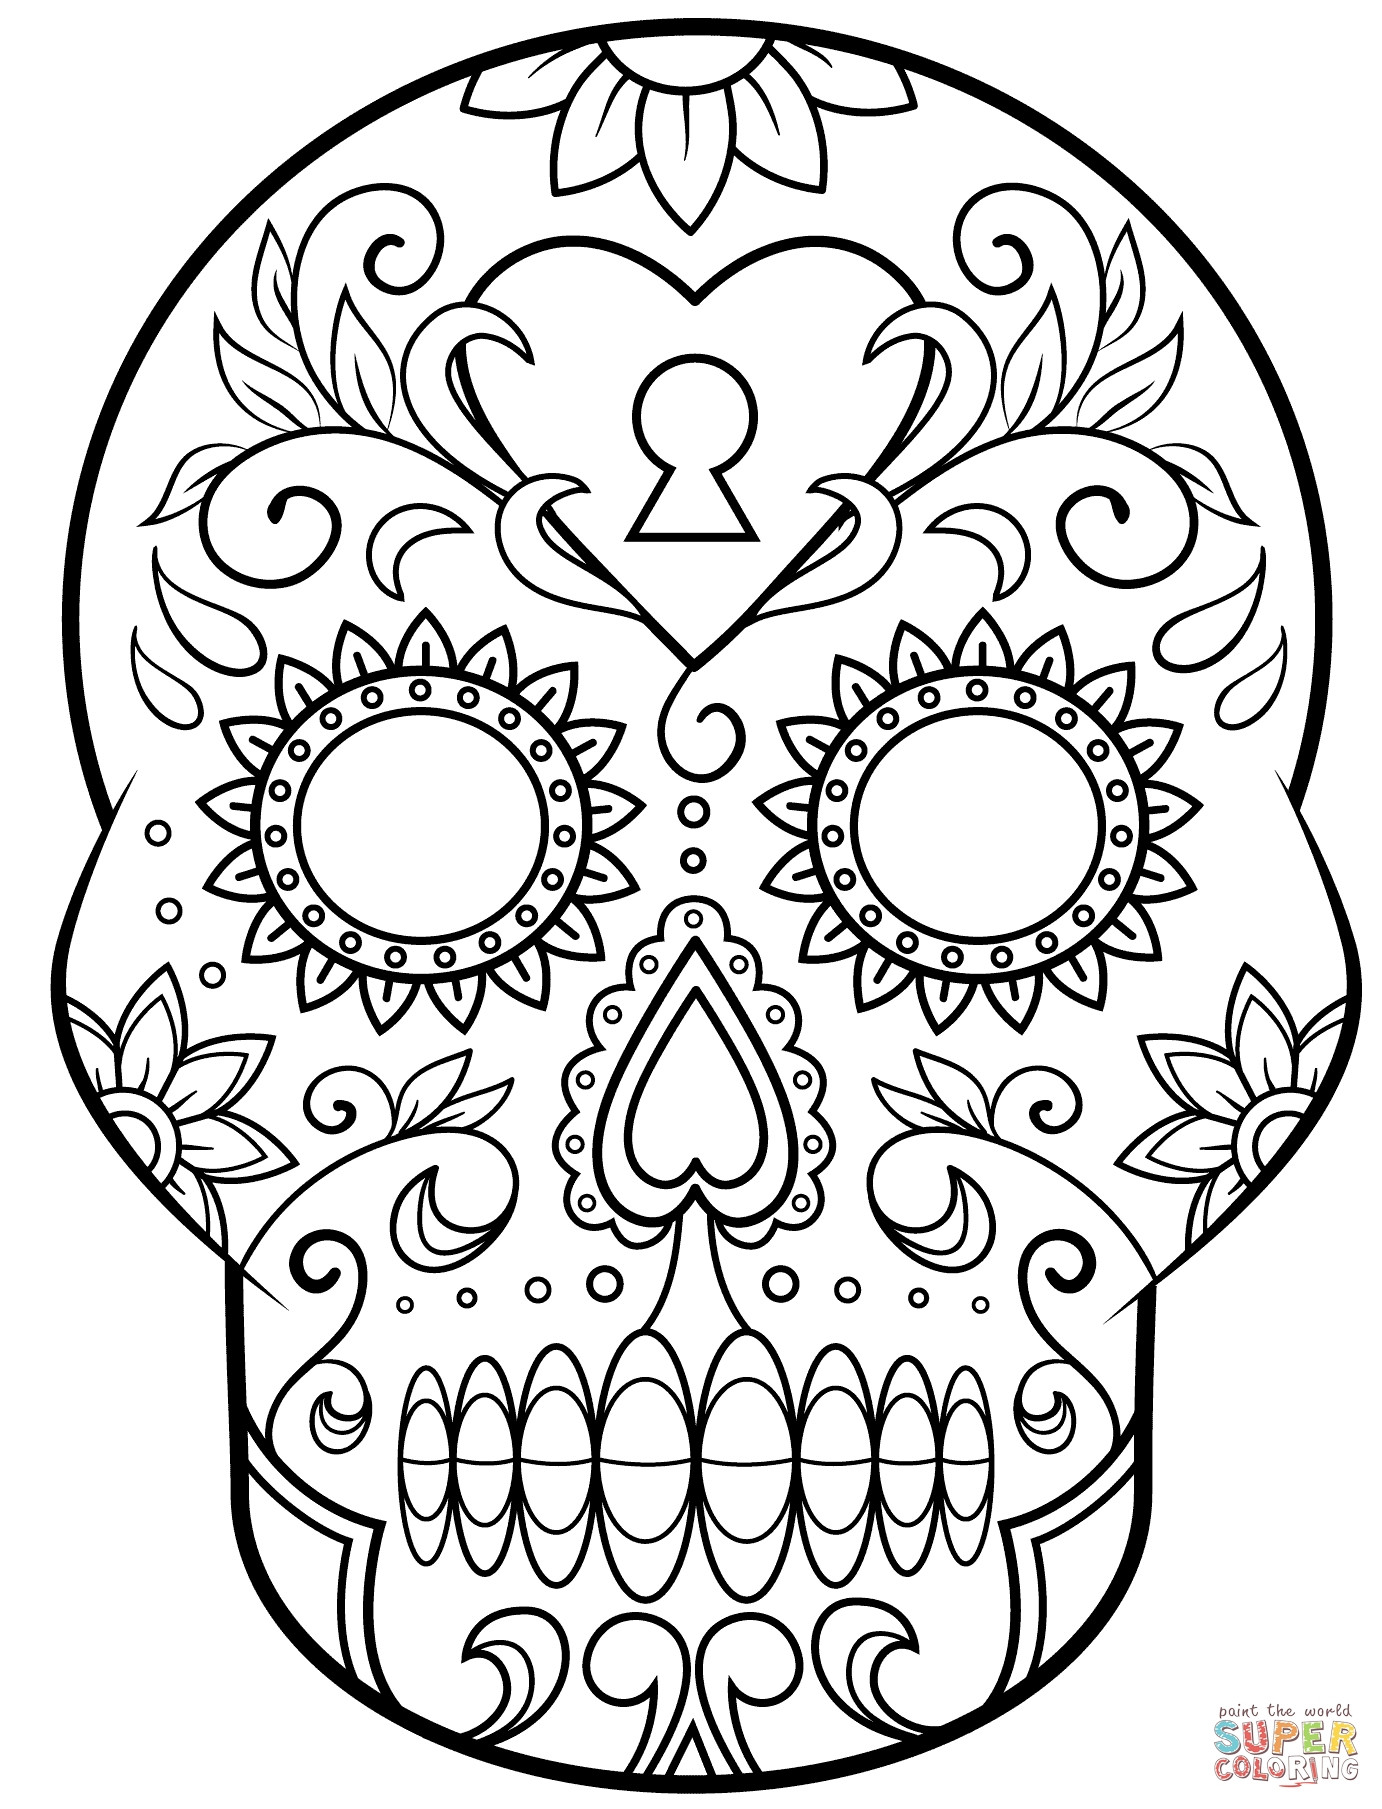 1382x1809 Awesome Coloring Pages Of Sugar Skulls Design Free Simple Cool